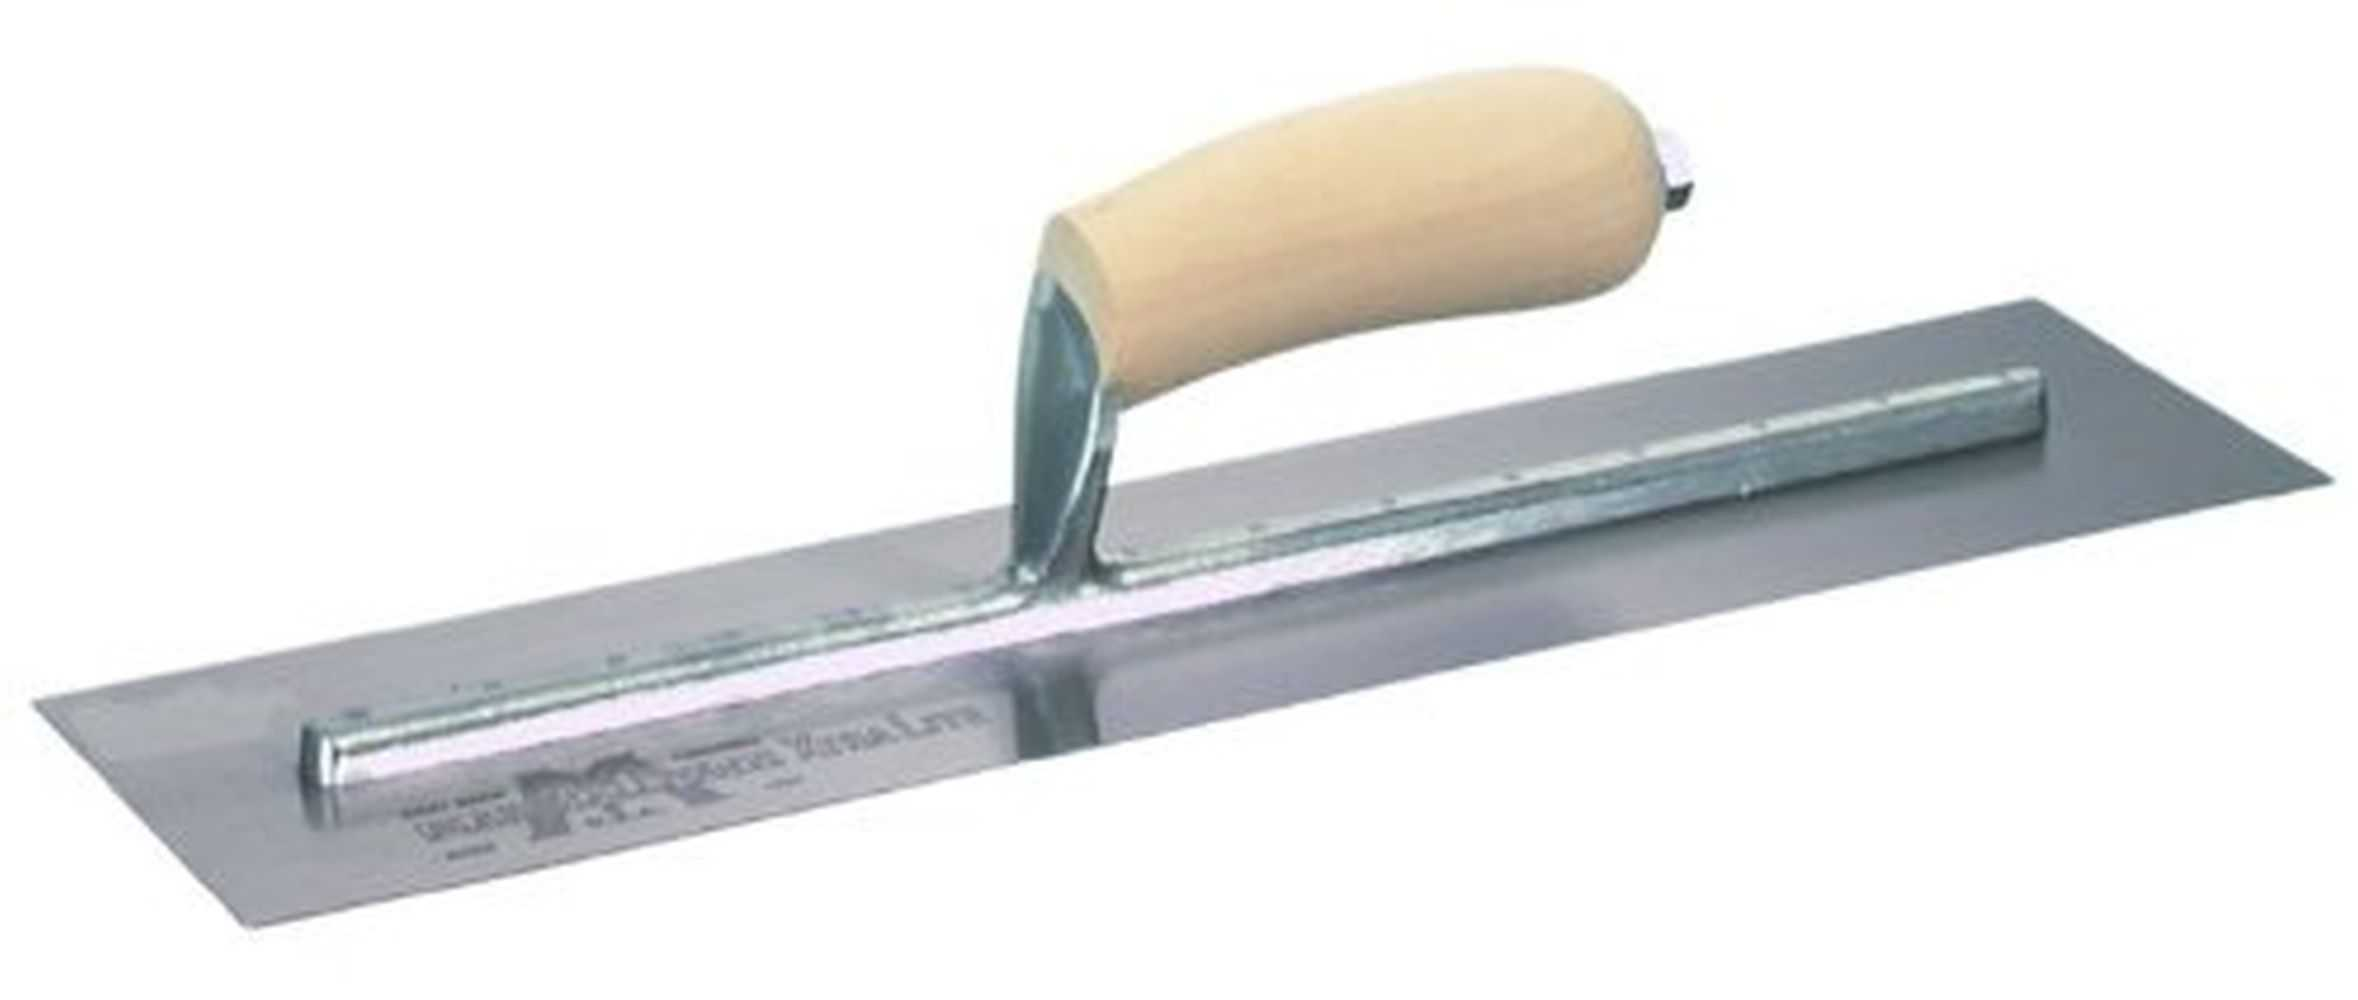 Marshalltown MXS60 16'x3' Finishing Trowel with Curved Wood Handle